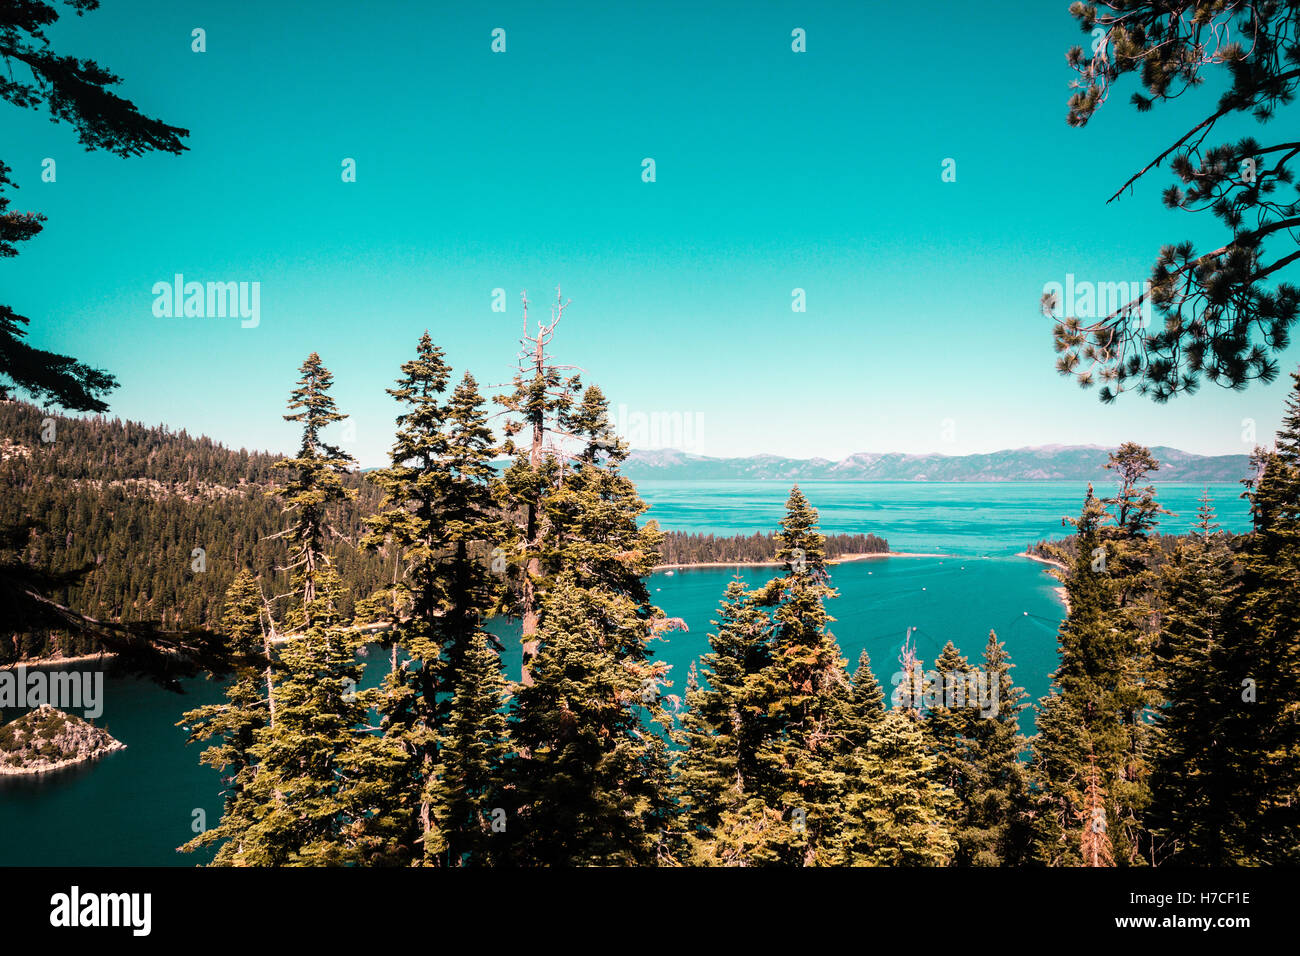 Photo of Emerald Bay and Lake Tahoe - Stock Image